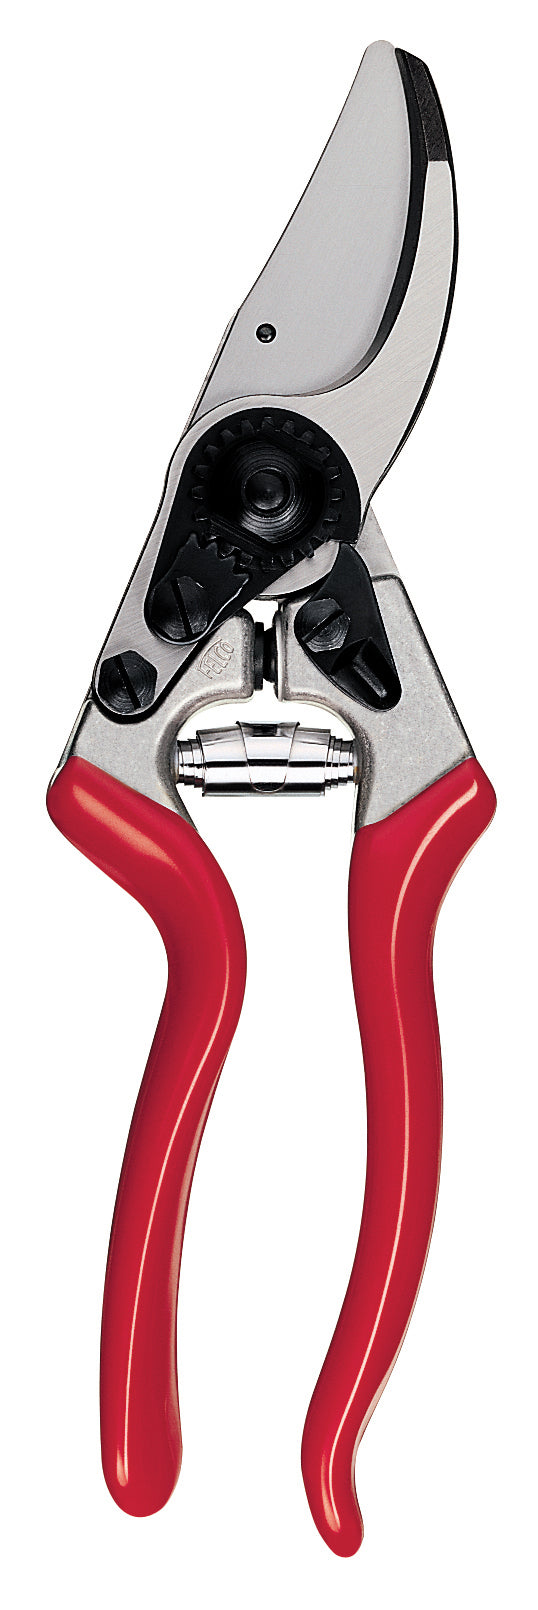 Pygar Incorporated - Felco 9 Pruning Shears